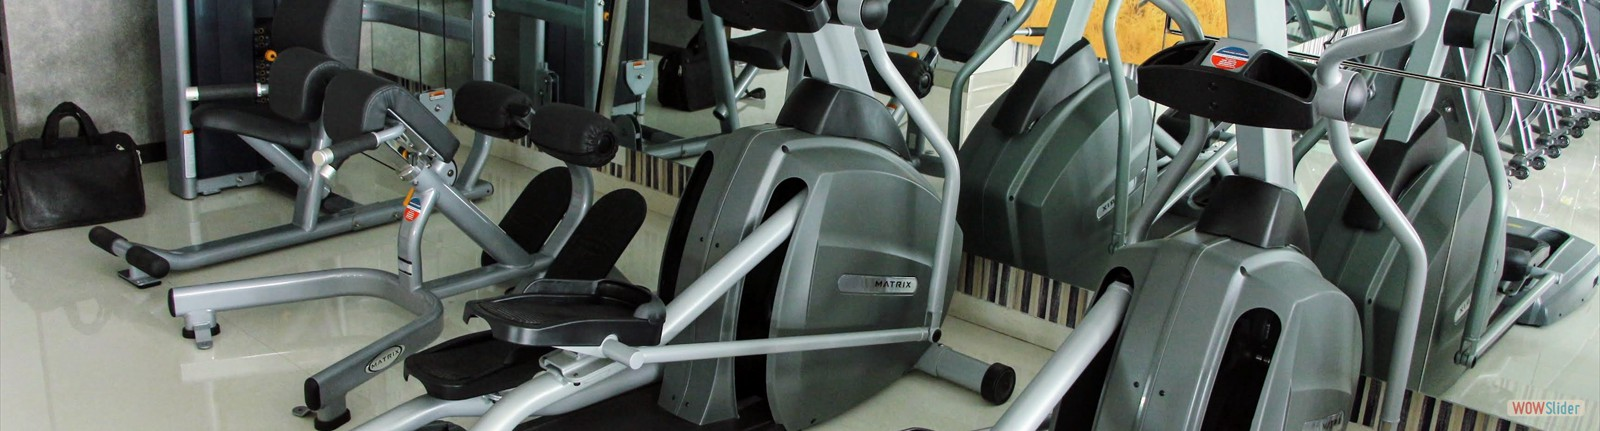 ELLIPTICAL/ CROSS TRAINER